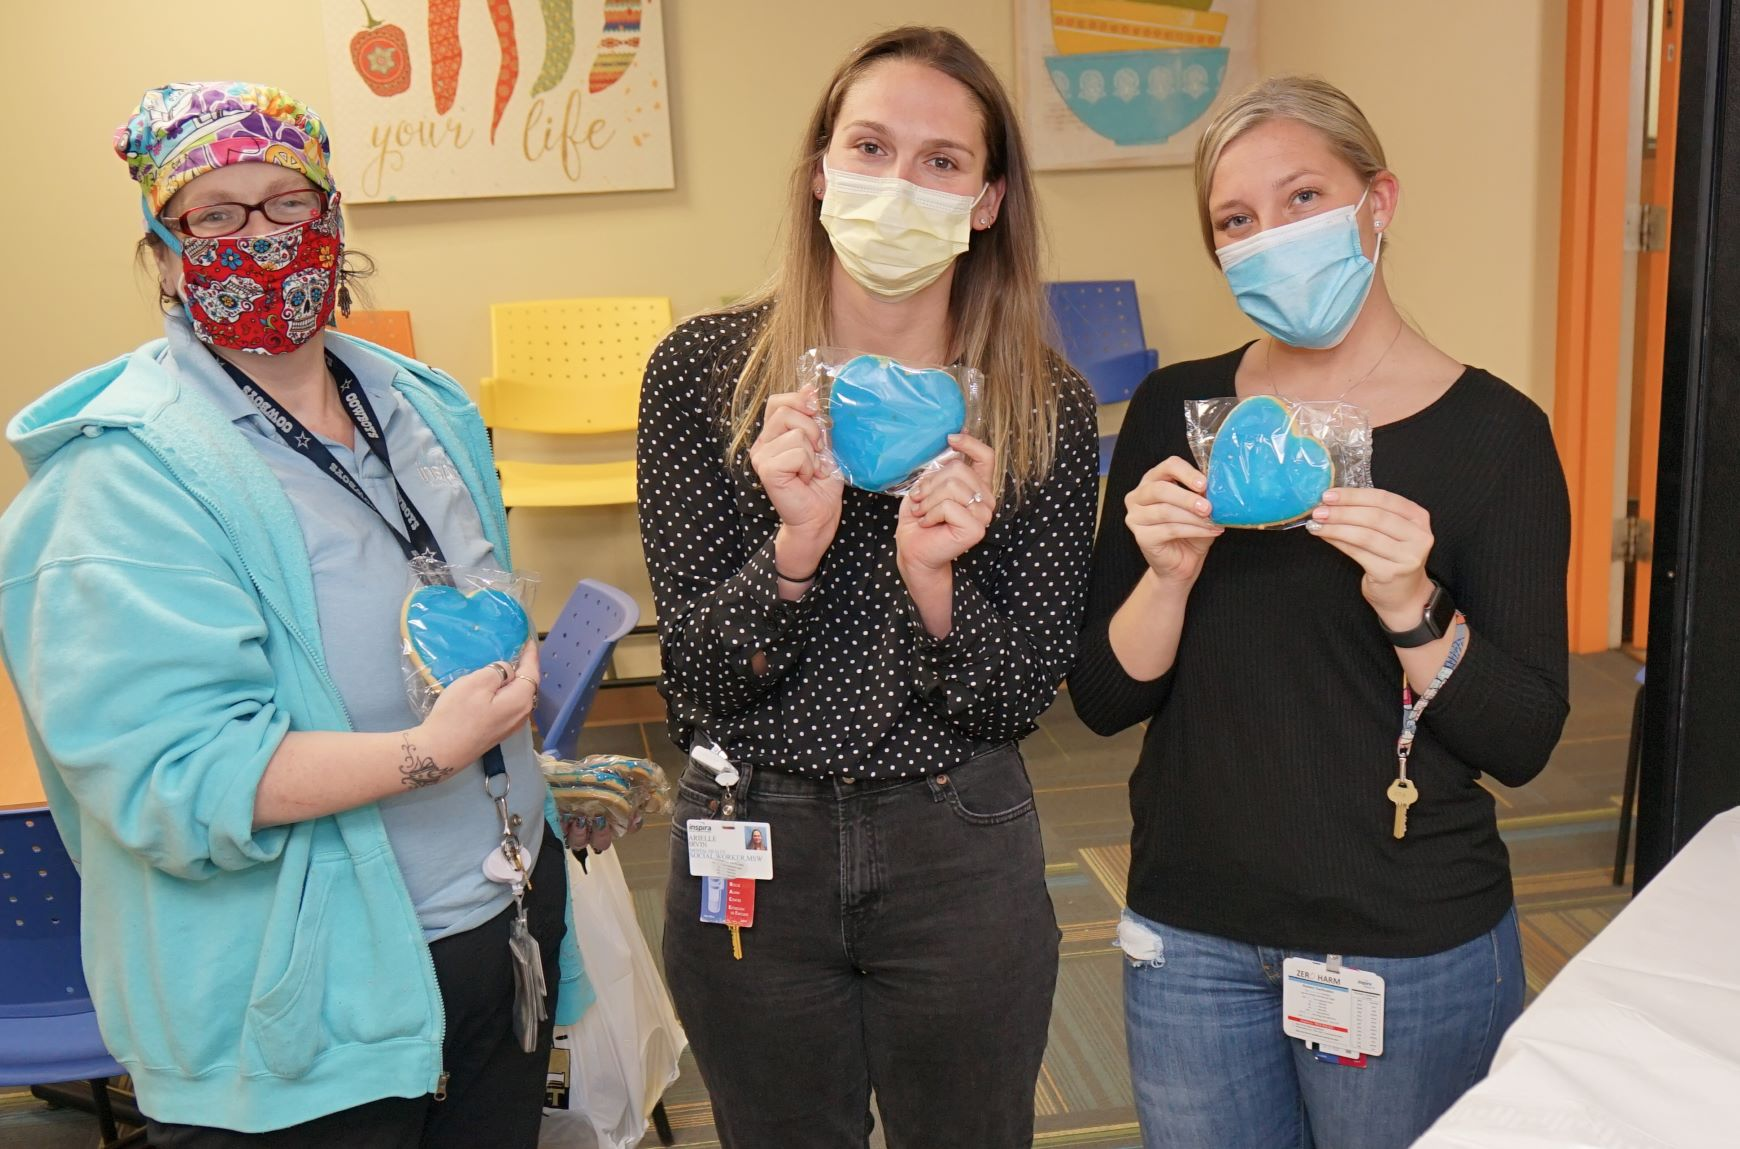 Bridgeton employees holding heart cookies and wearing masks